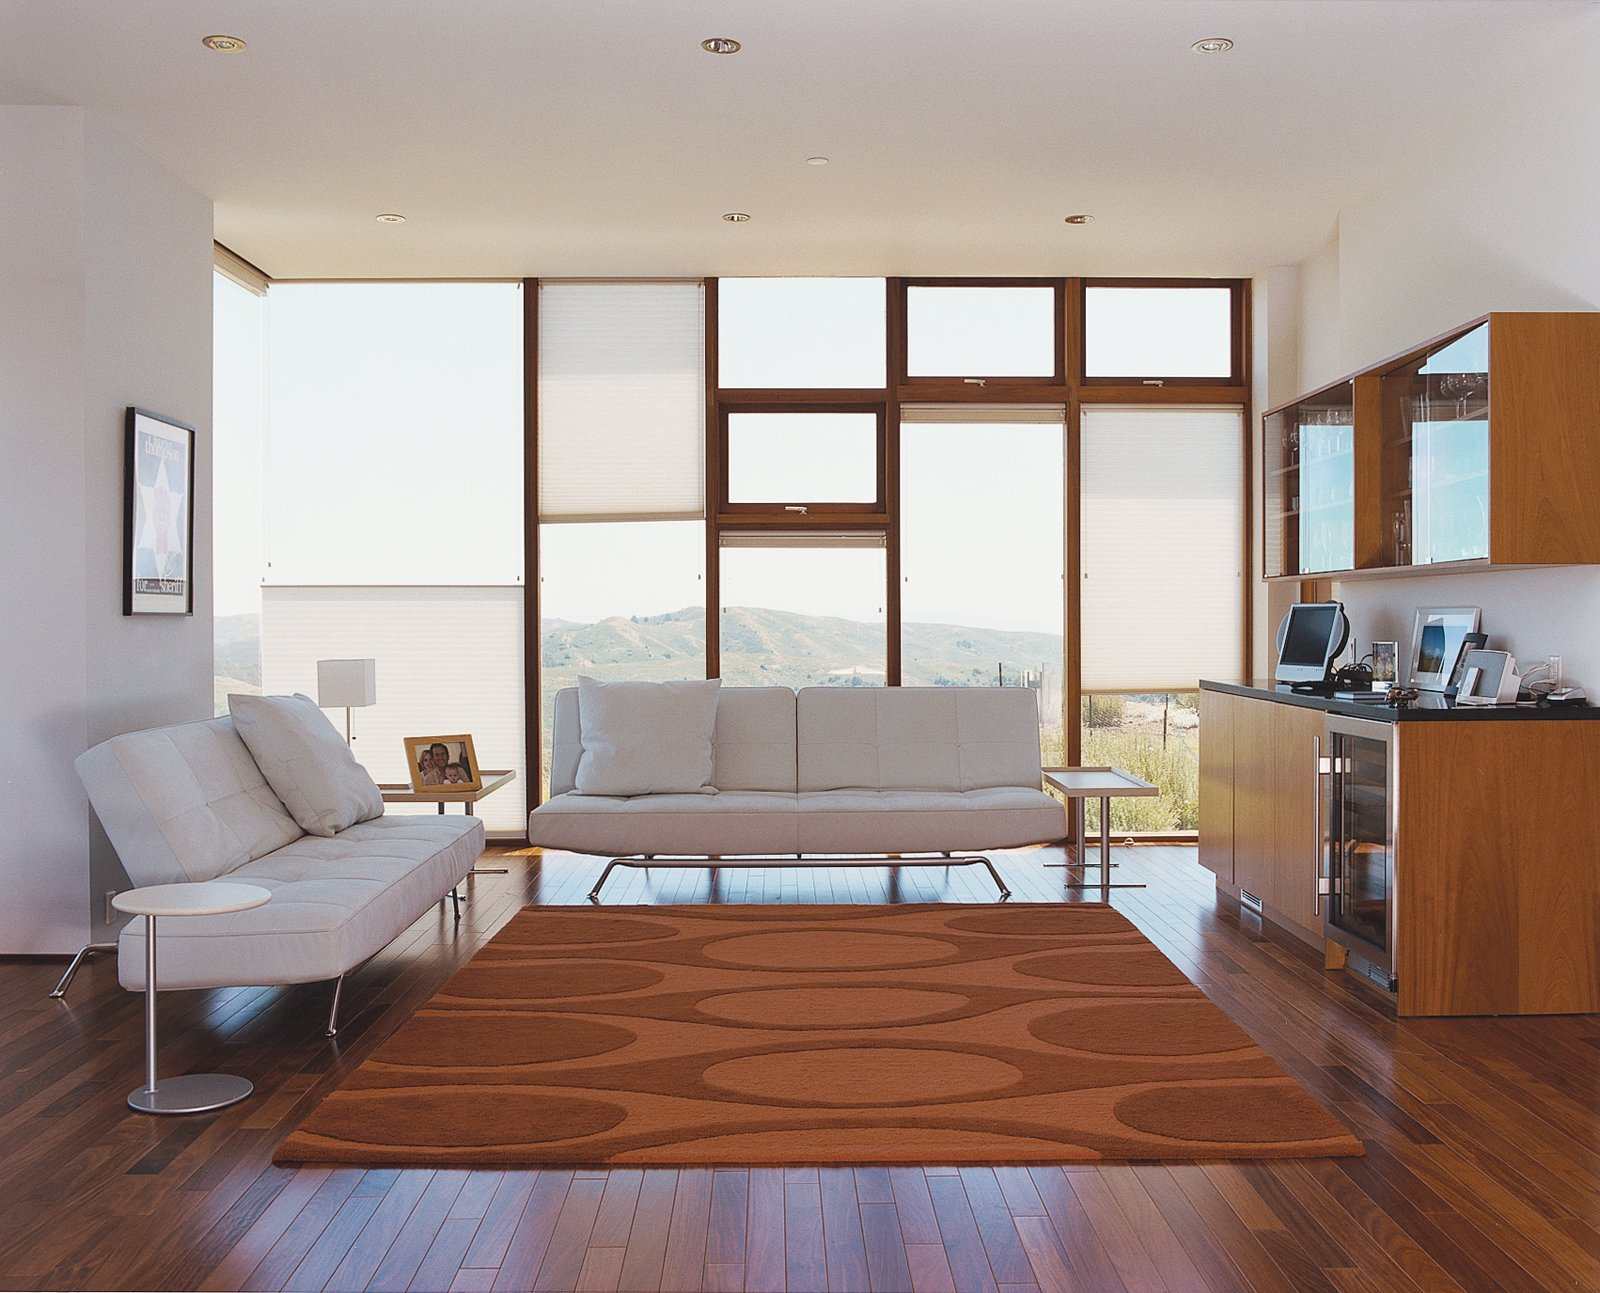 The Shermans' living room is outfitted with Ligne Roset Smala sofas by Pascal Mourgue and a Kenga rug by Angela Adams.  Photo 3 of 5 in Untraditional in Marin